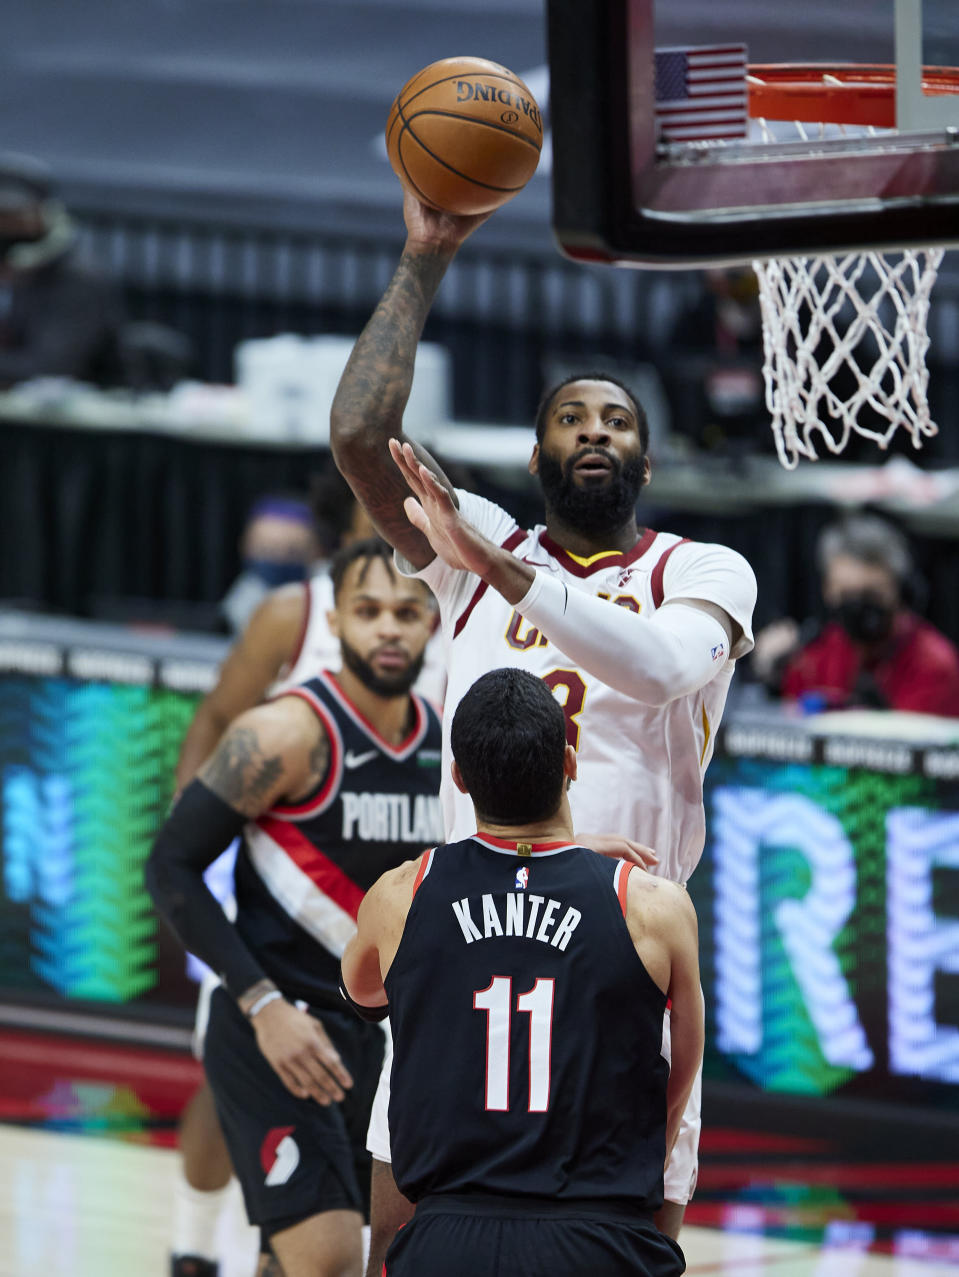 Cleveland Cavaliers center Andre Drummond, top, shoots over Portland Trail Blazers center Enes Kanter during the first half of an NBA basketball game in Portland, Ore., Friday, Feb. 12, 2021. (AP Photo/Craig Mitchelldyer)